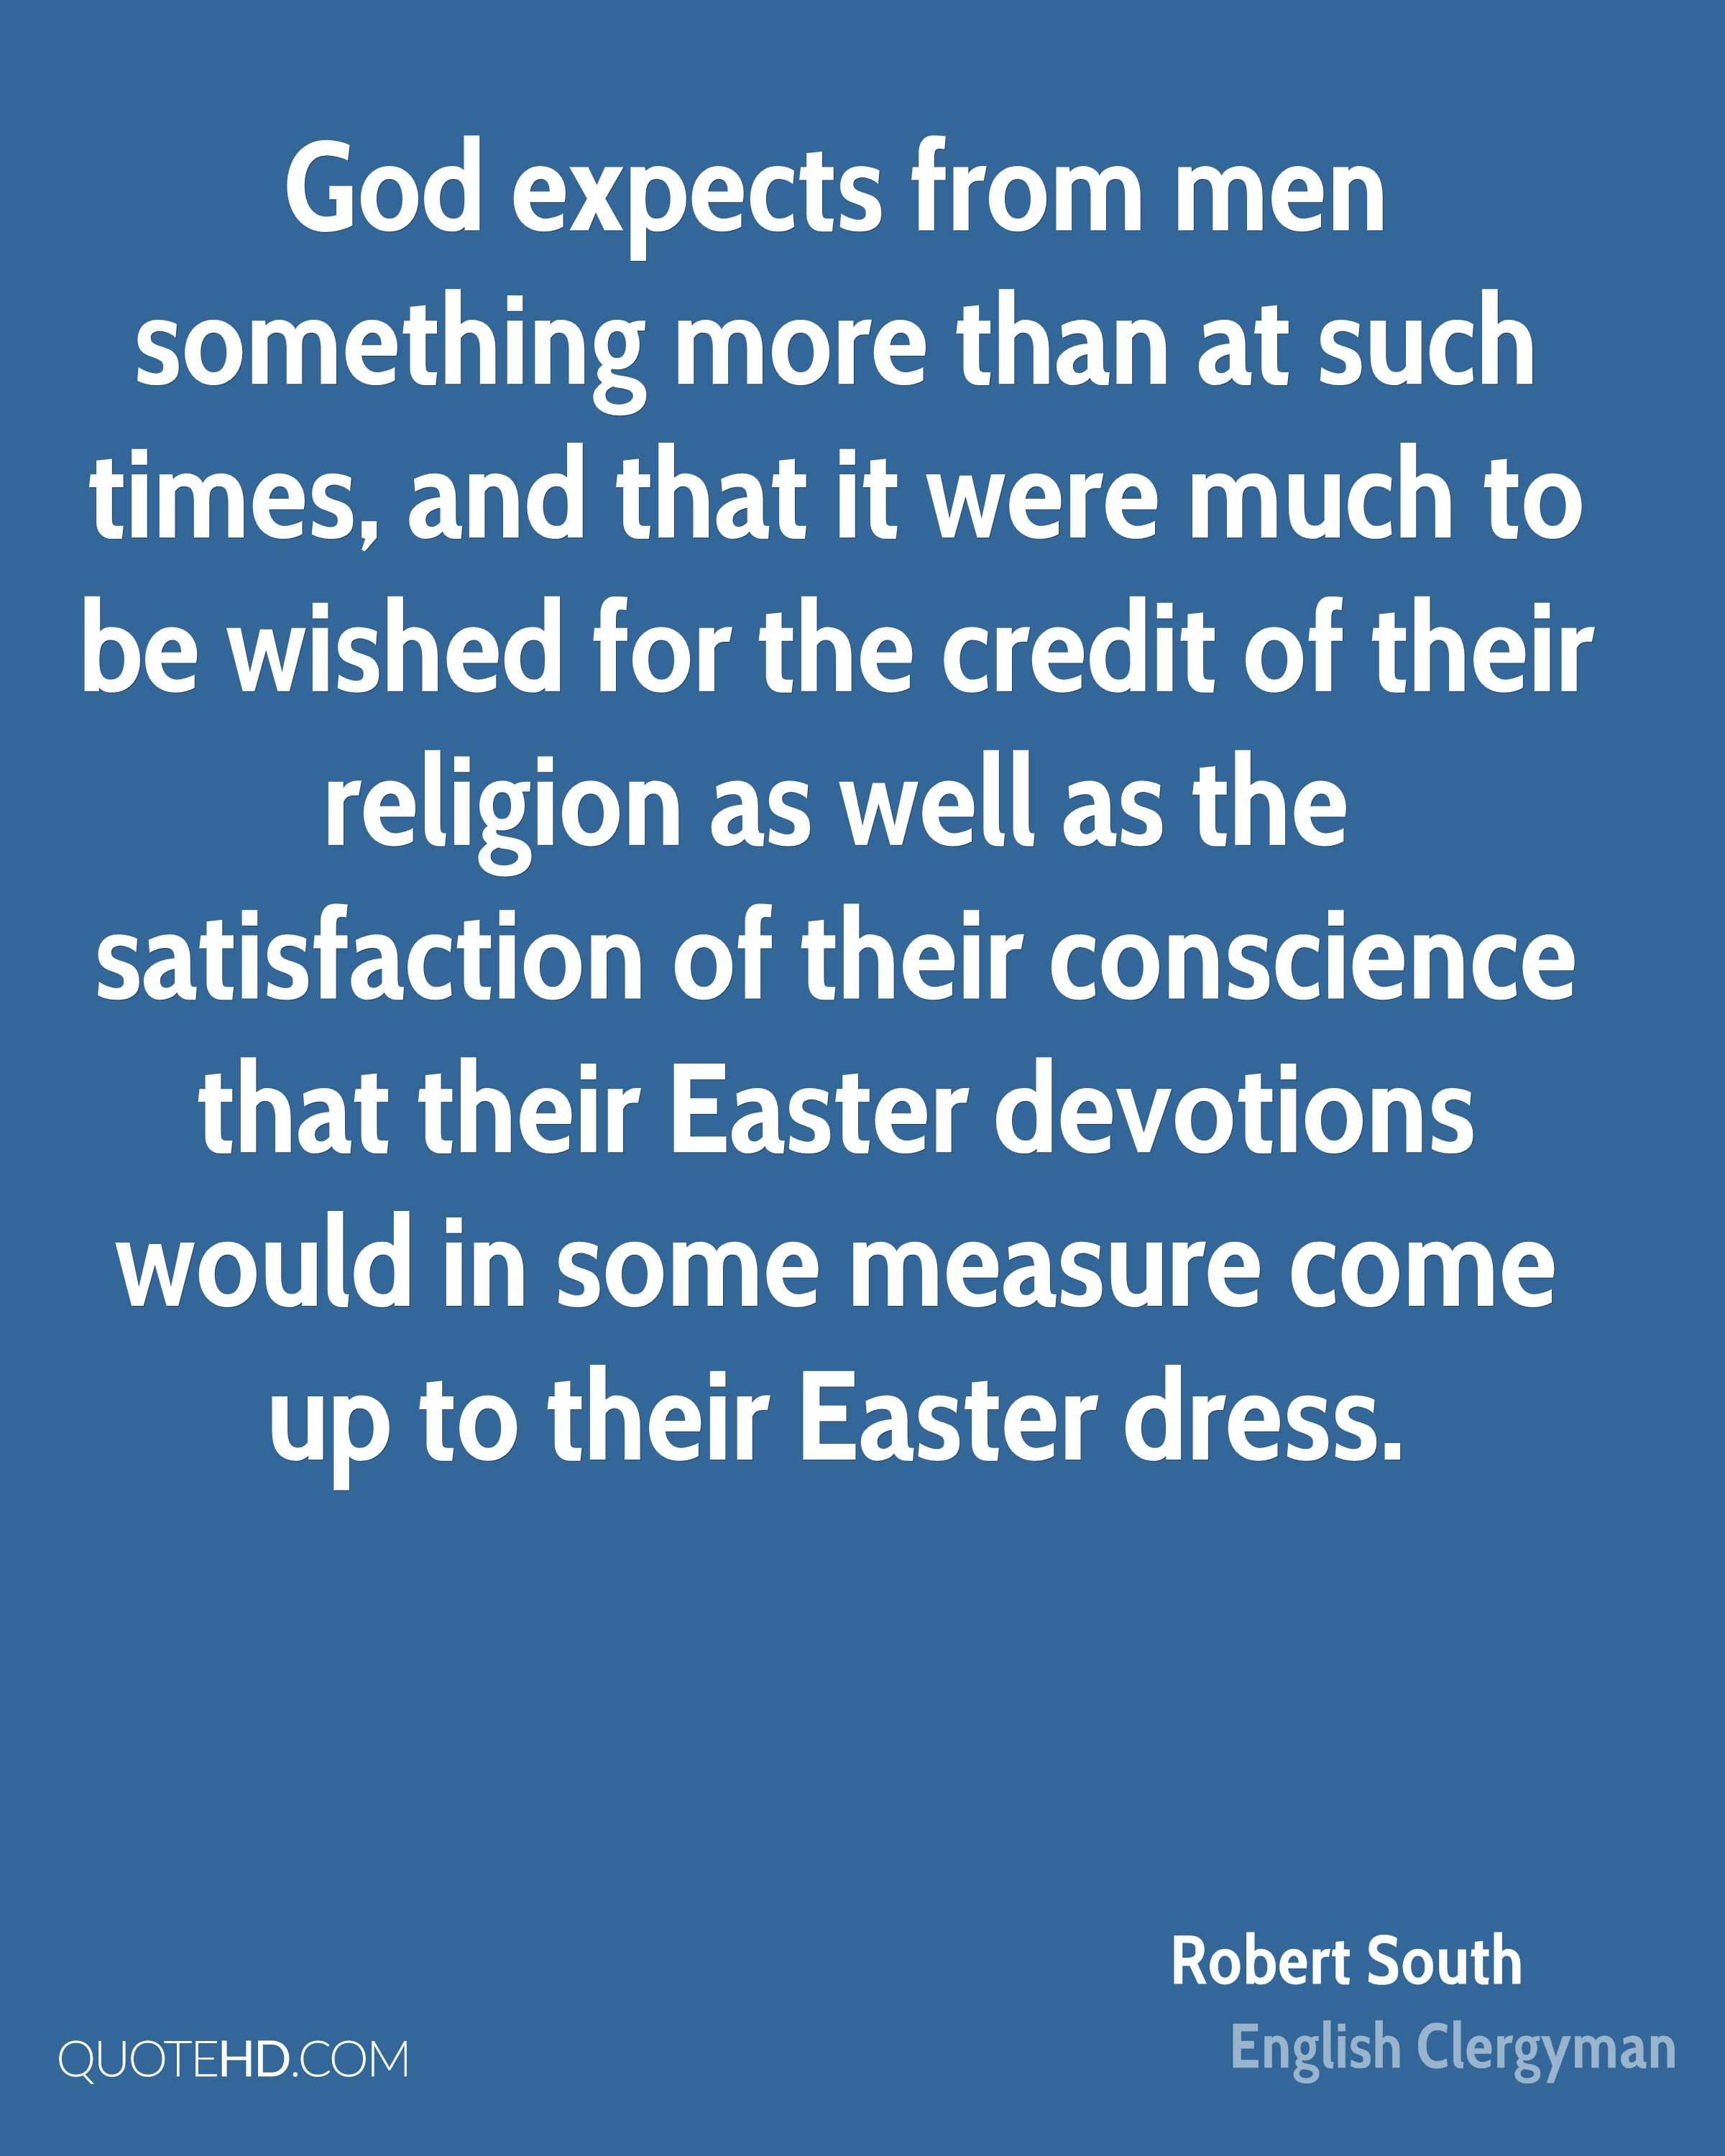 God expects from men something more than at such times, and that it were much to be wished for the credit of their religion as well as the satisfaction of their conscience that their Easter devotions would in some measure come up to their Easter dress.